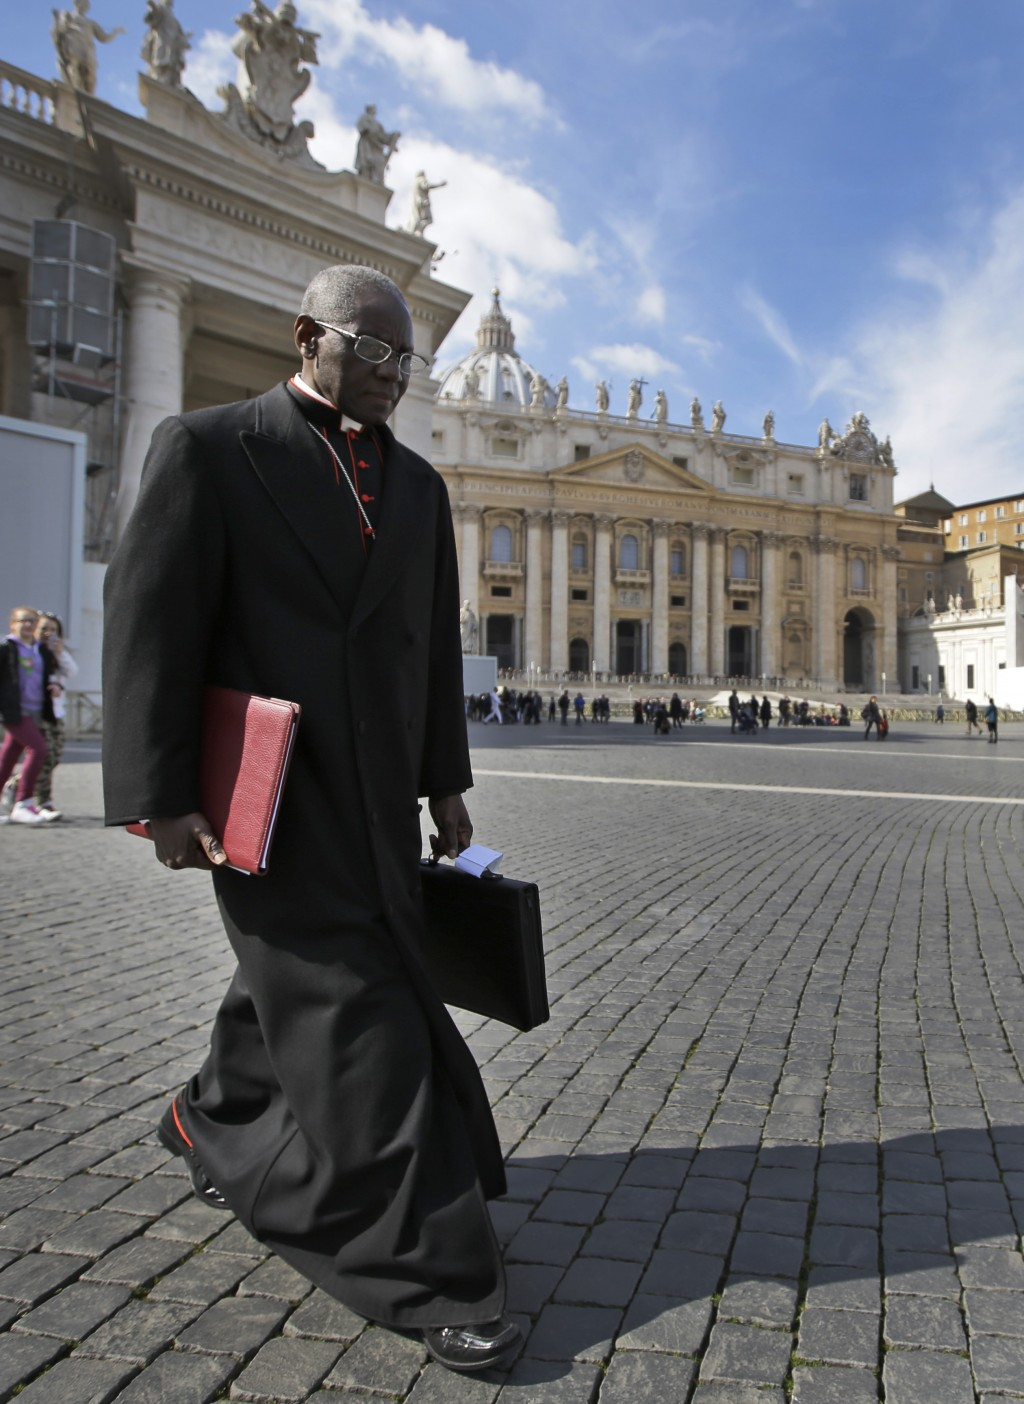 FILE - In this Monday, March 4, 2013 file photo, Cardinal Robert Sarah, of Guinea, walks in St. Peter's Square after attending a cardinals' meeting, a...